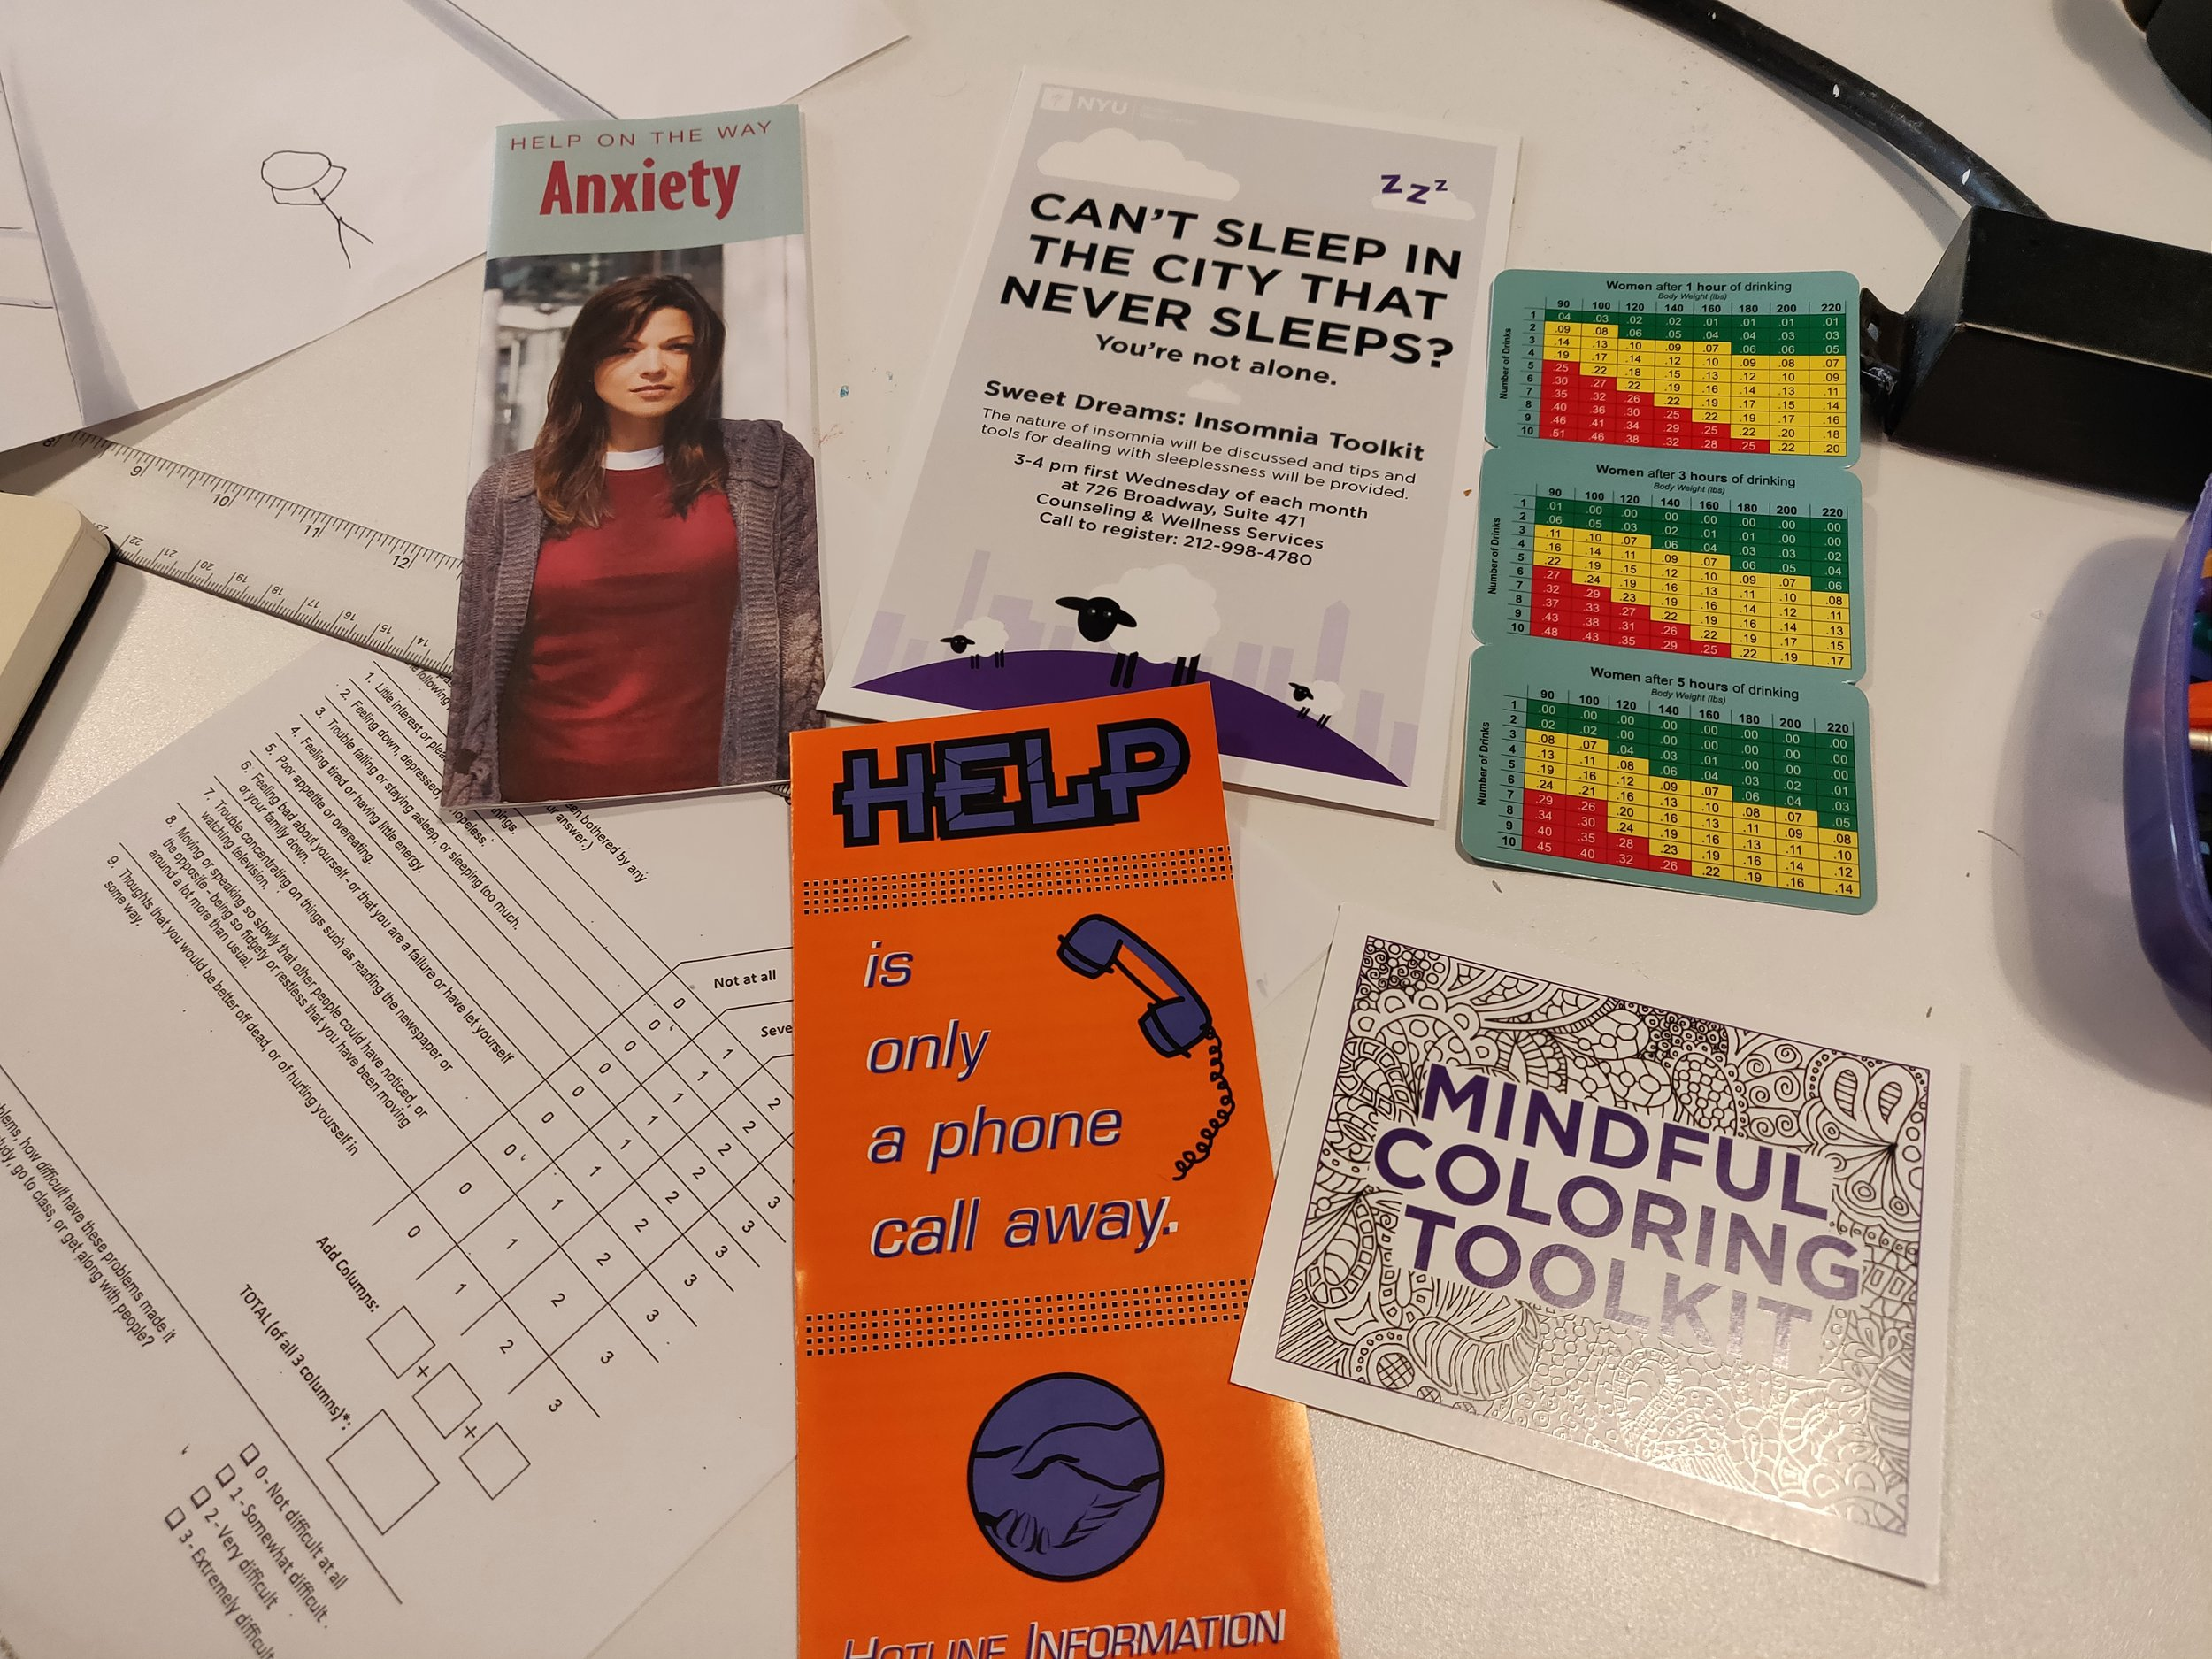 Forms and brochures provided by the counseling office at Tisch